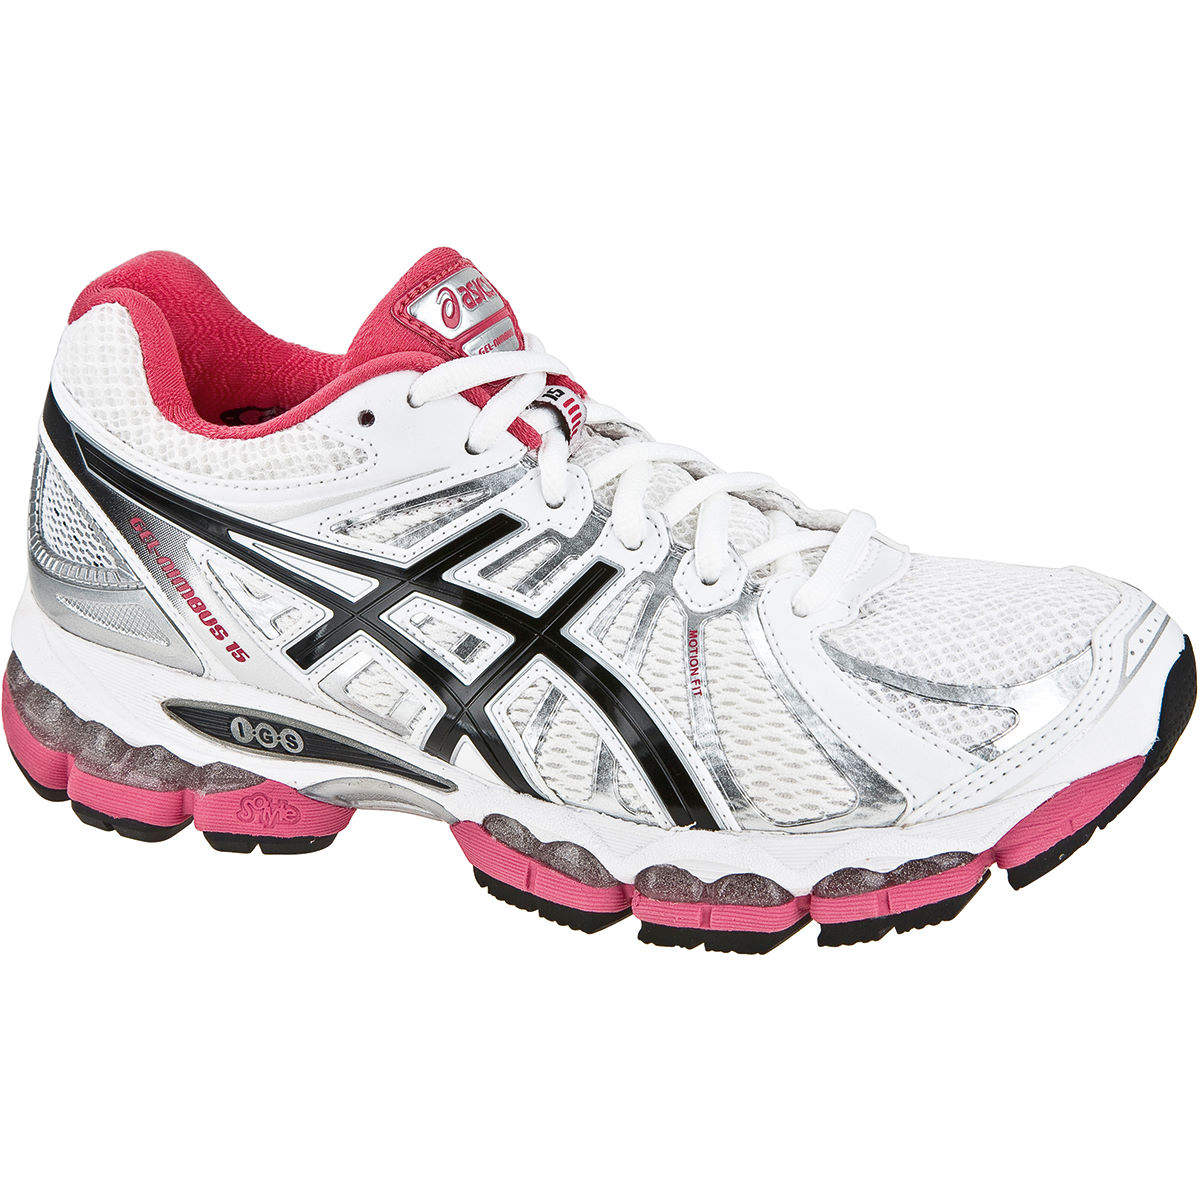 asics gel nimbus 15 ladies running shoes